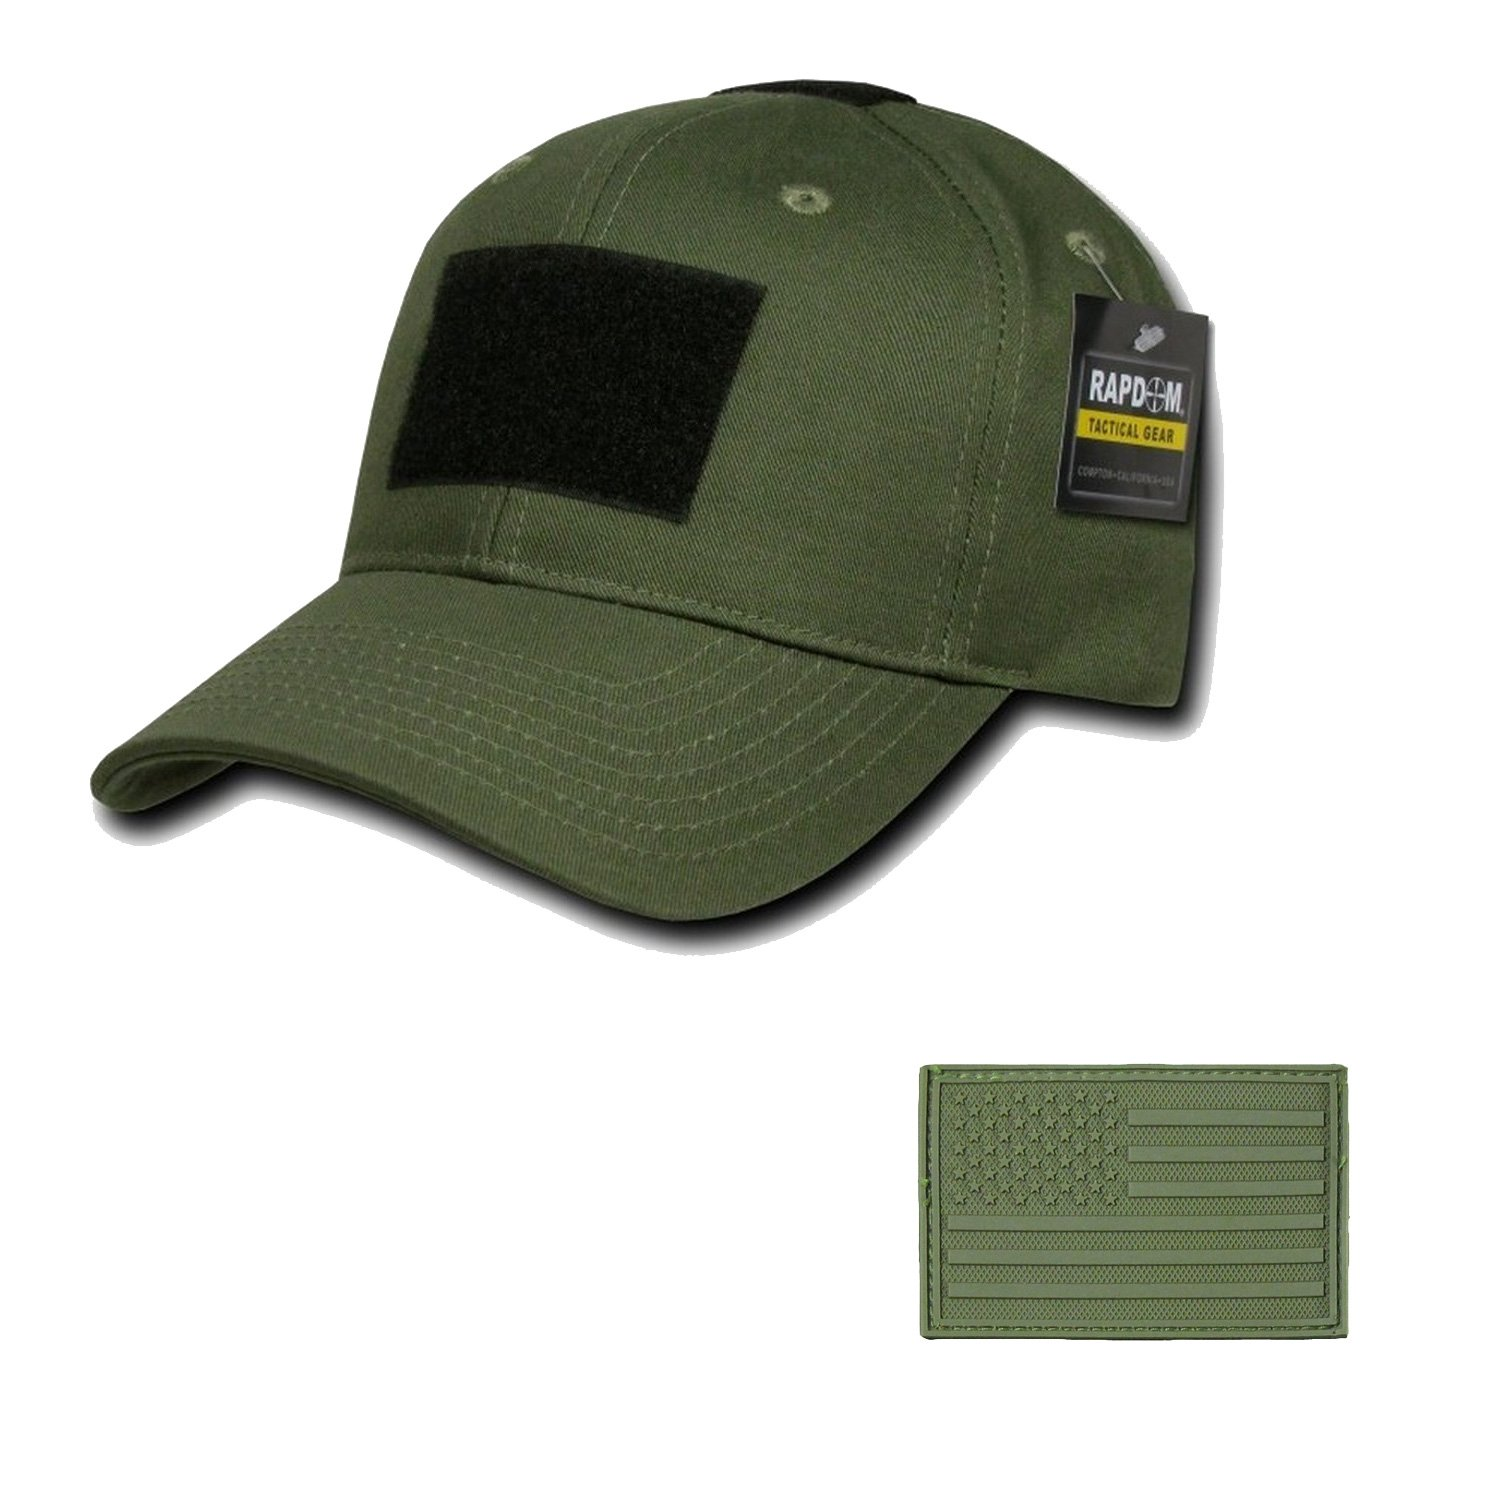 RAPDOM Genuine Tactical Constructed Ball Operator Cap Olive Caps with Free Patch (Olive, USA Flag Olive Patch) by RAPDOM